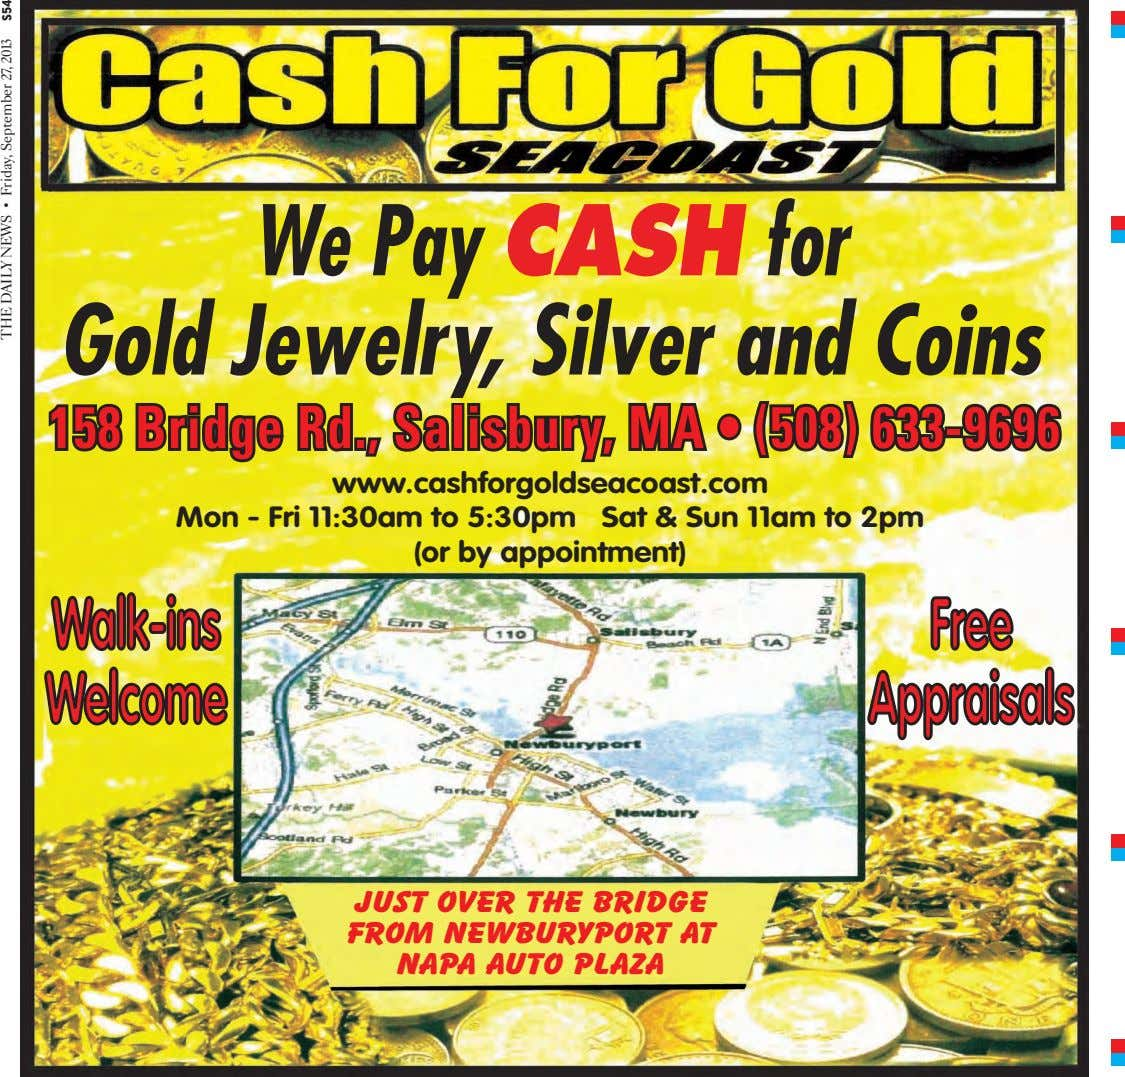 We Pay CASH for Gold Jewelry, Silver and Coins 158 Bridge Rd., Salisbury, MA •